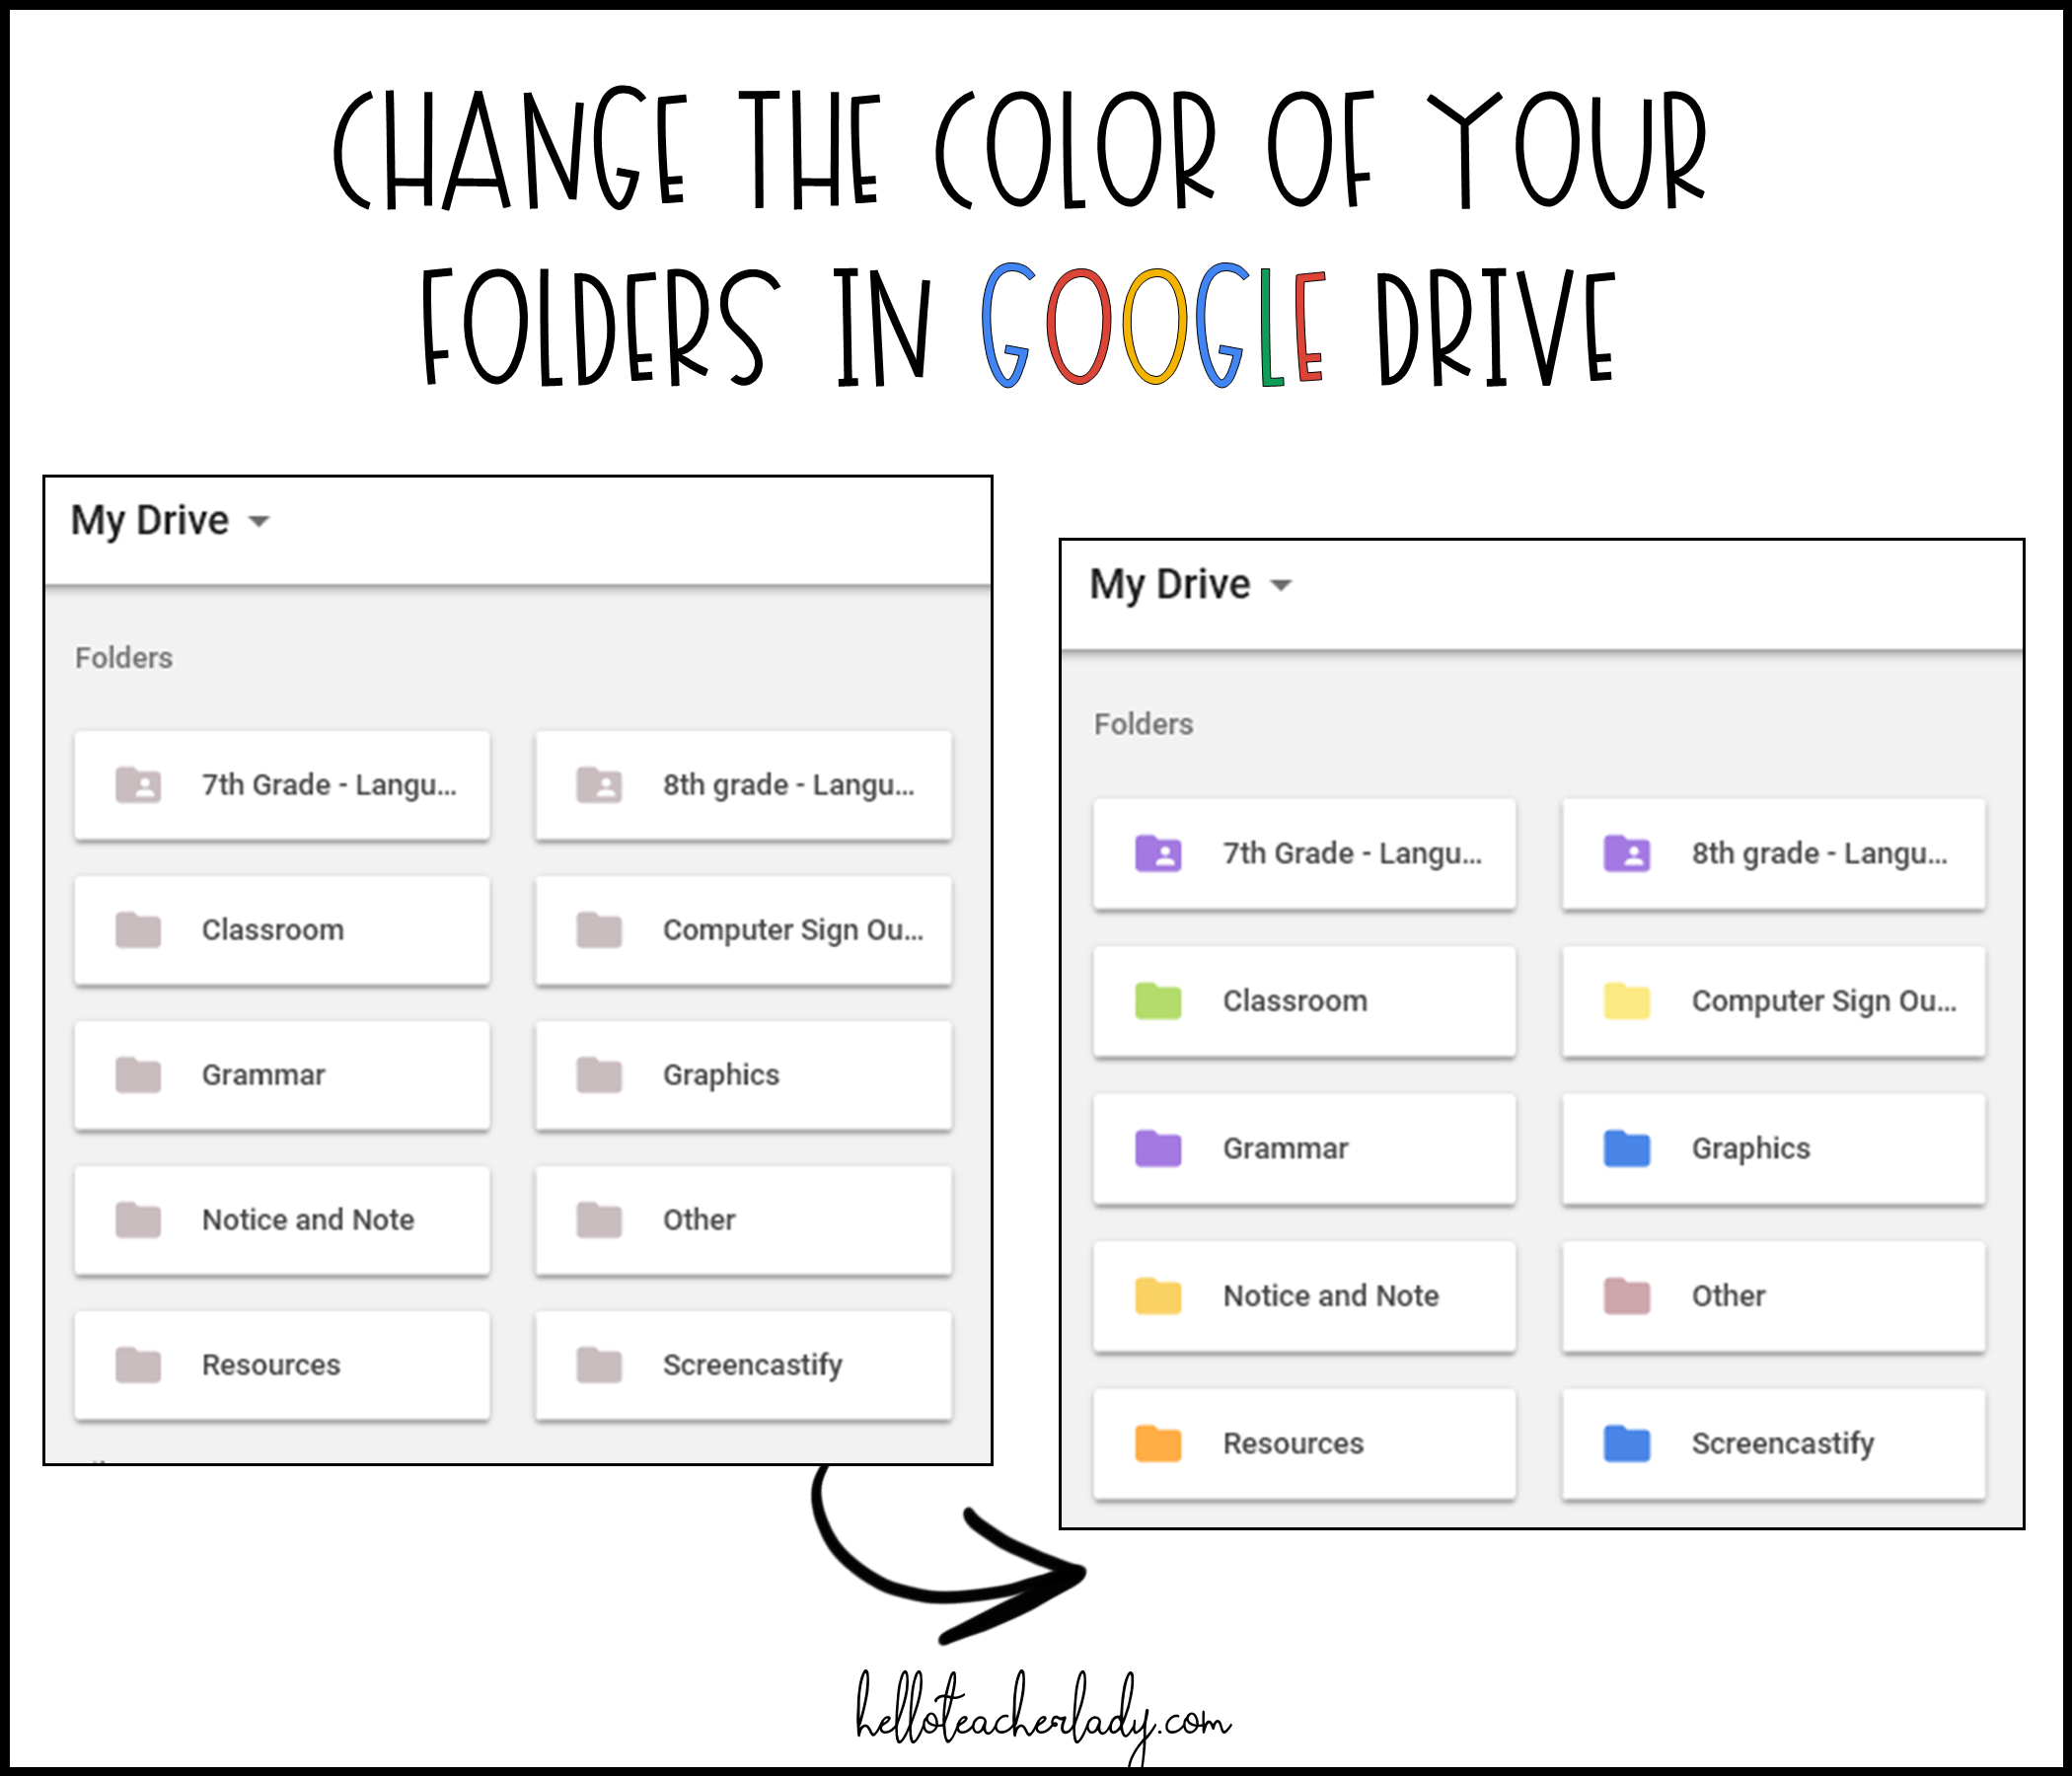 4 Google Drive tips every teacher (and student) should know: How to change the color of your folders